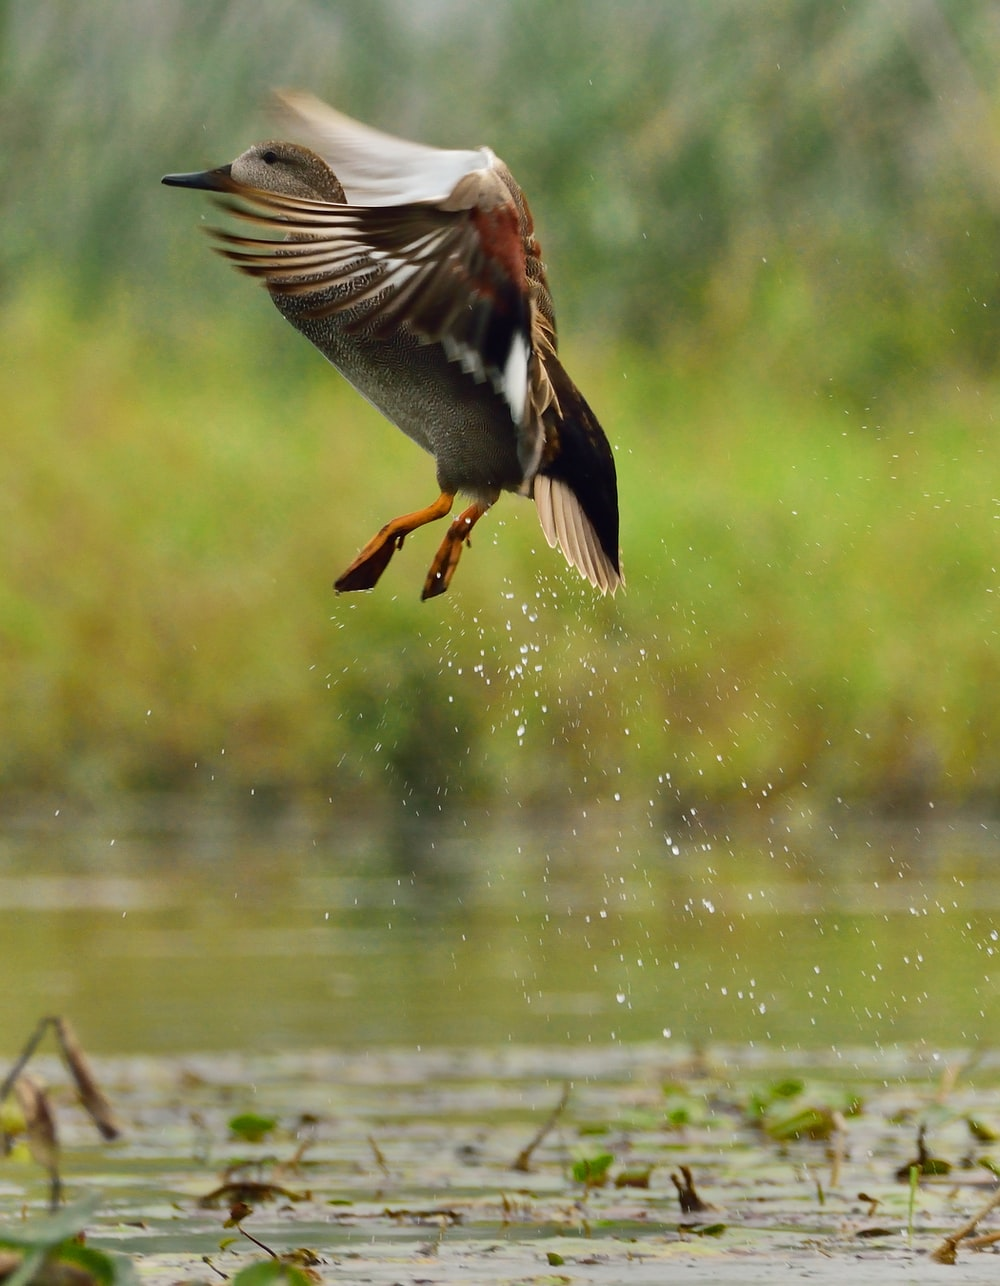 brown and white bird flying over body of water during daytime